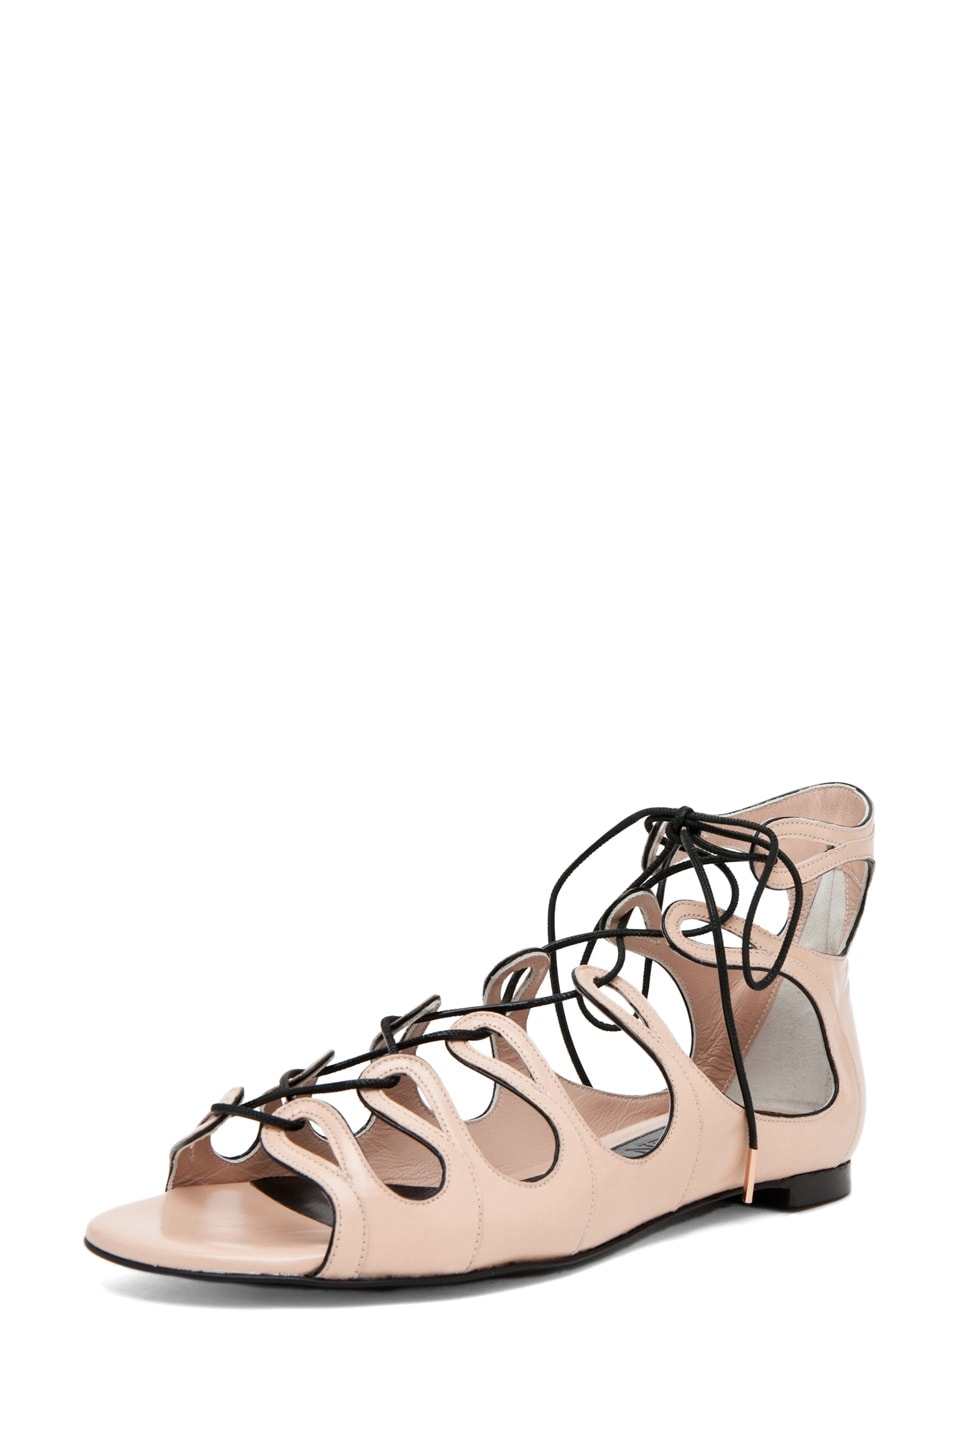 Image 2 of Alexander McQueen Lace Up Sandal in Saraband/Black